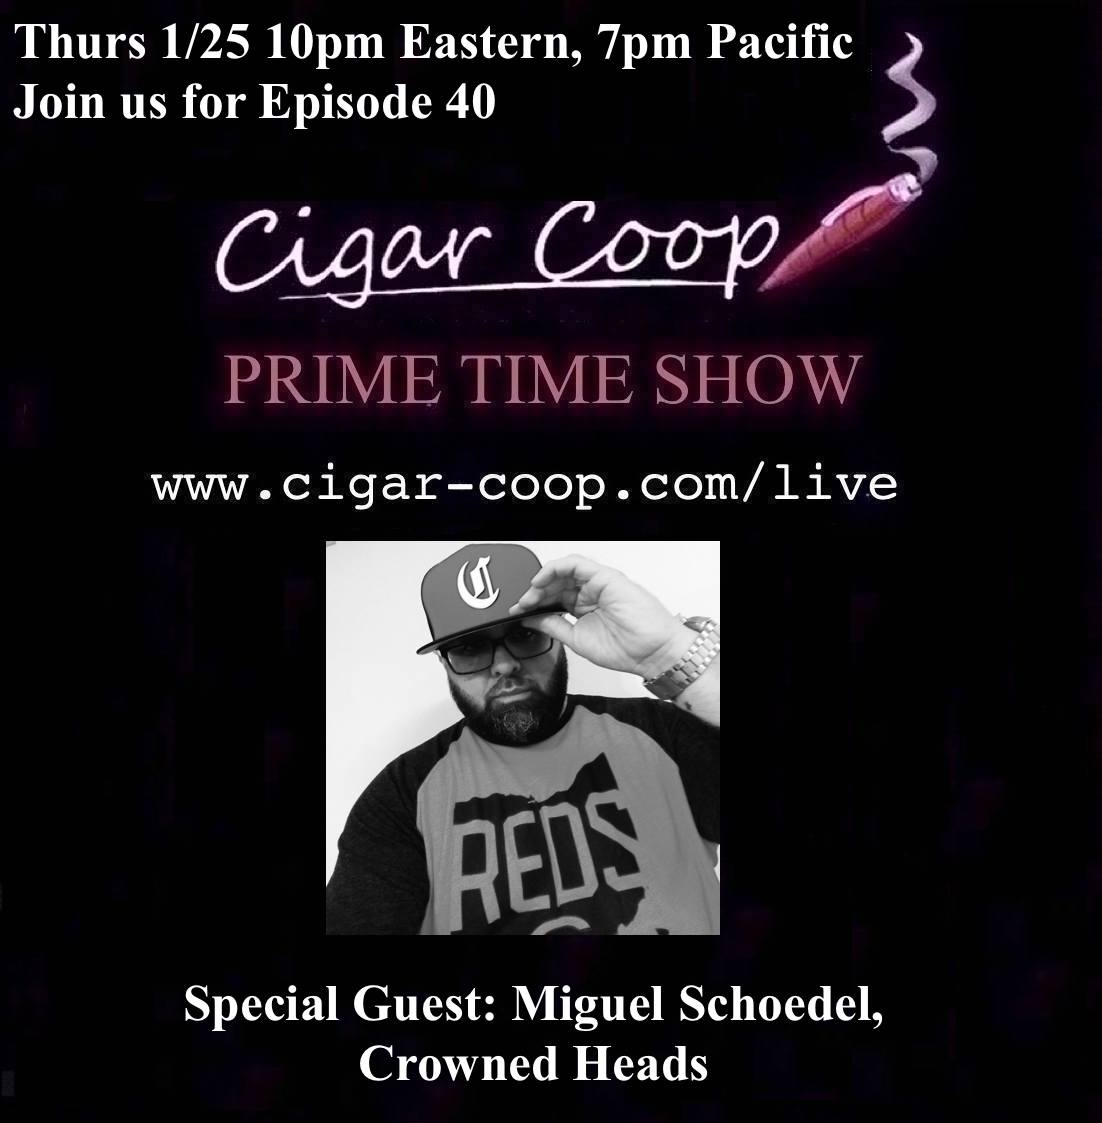 Announcement: Prime Time Show Episode 40 1/25/18 10pm Eastern, 7pm Pacific